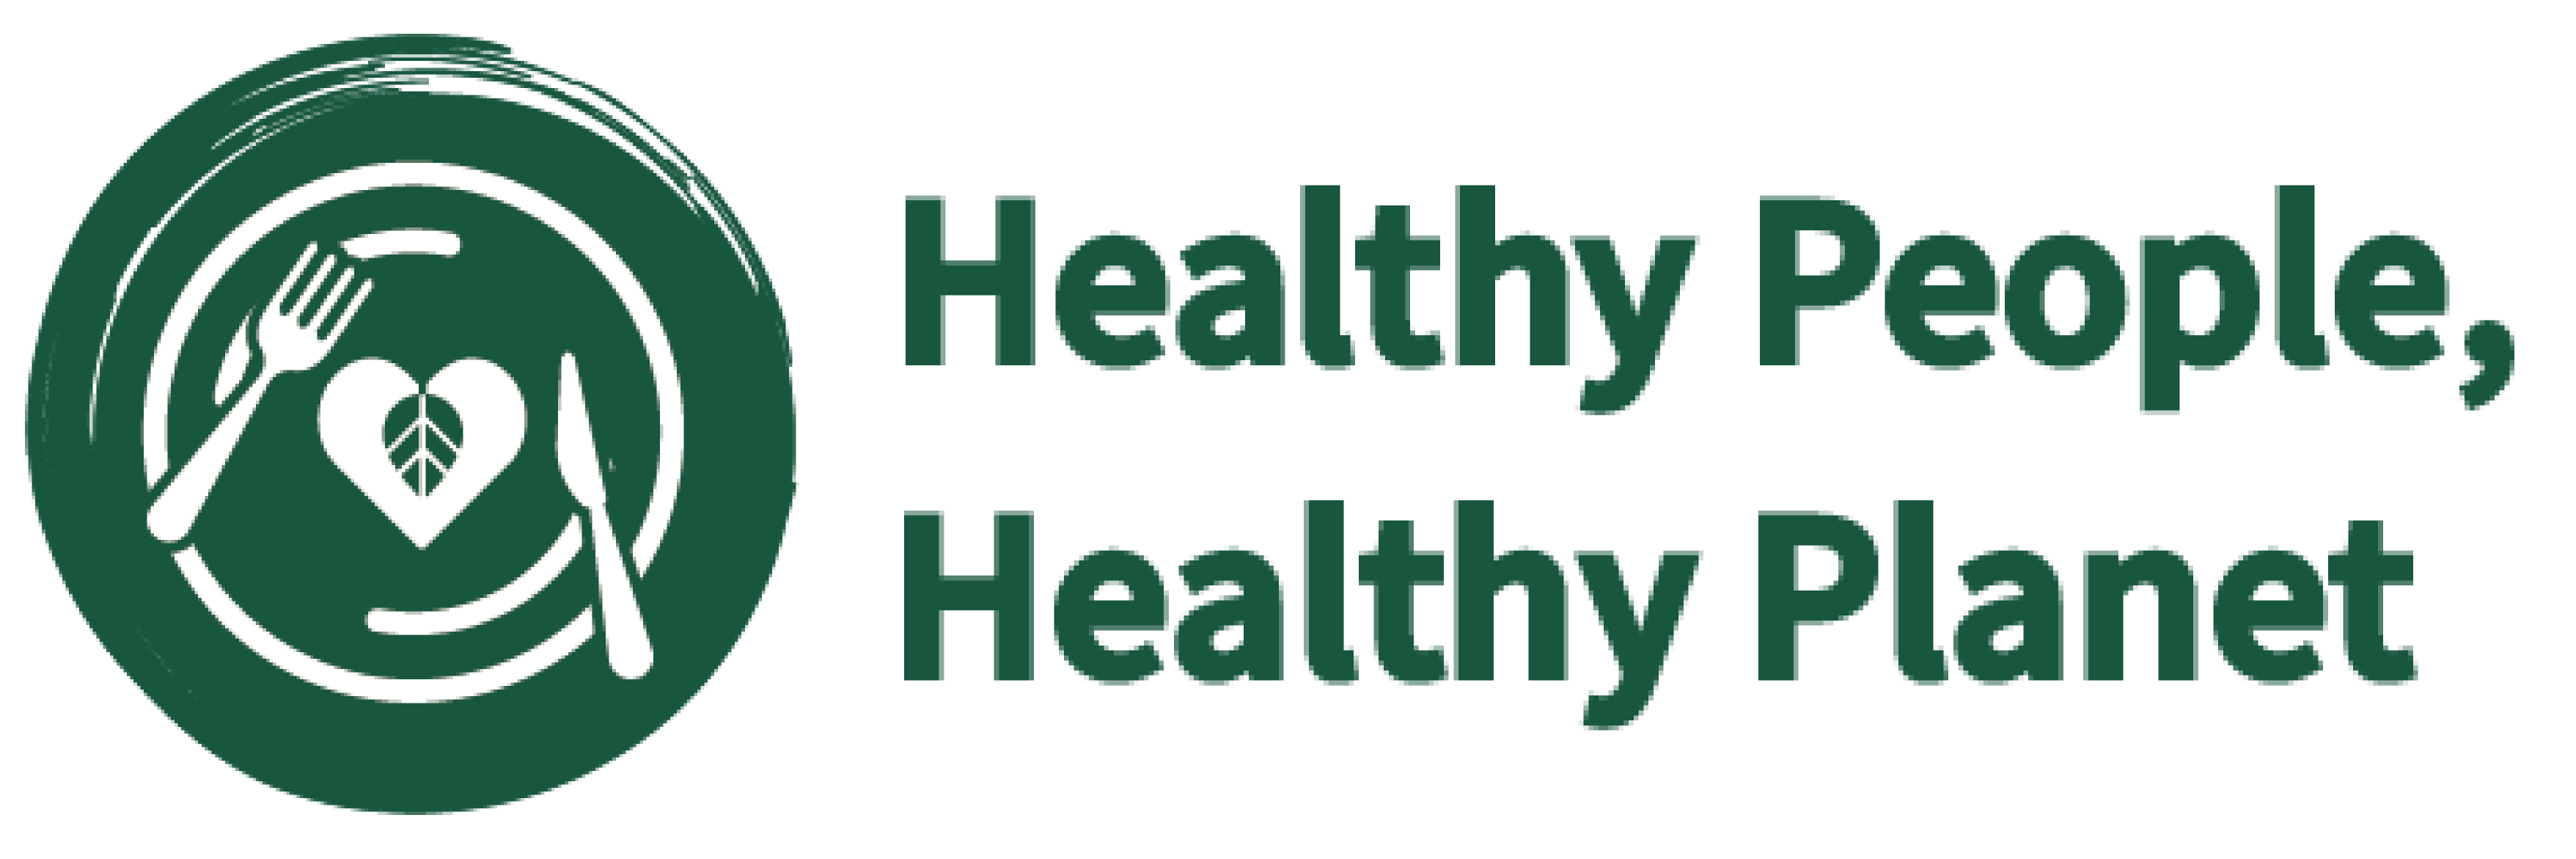 Healthy People, Healthy Planet logo